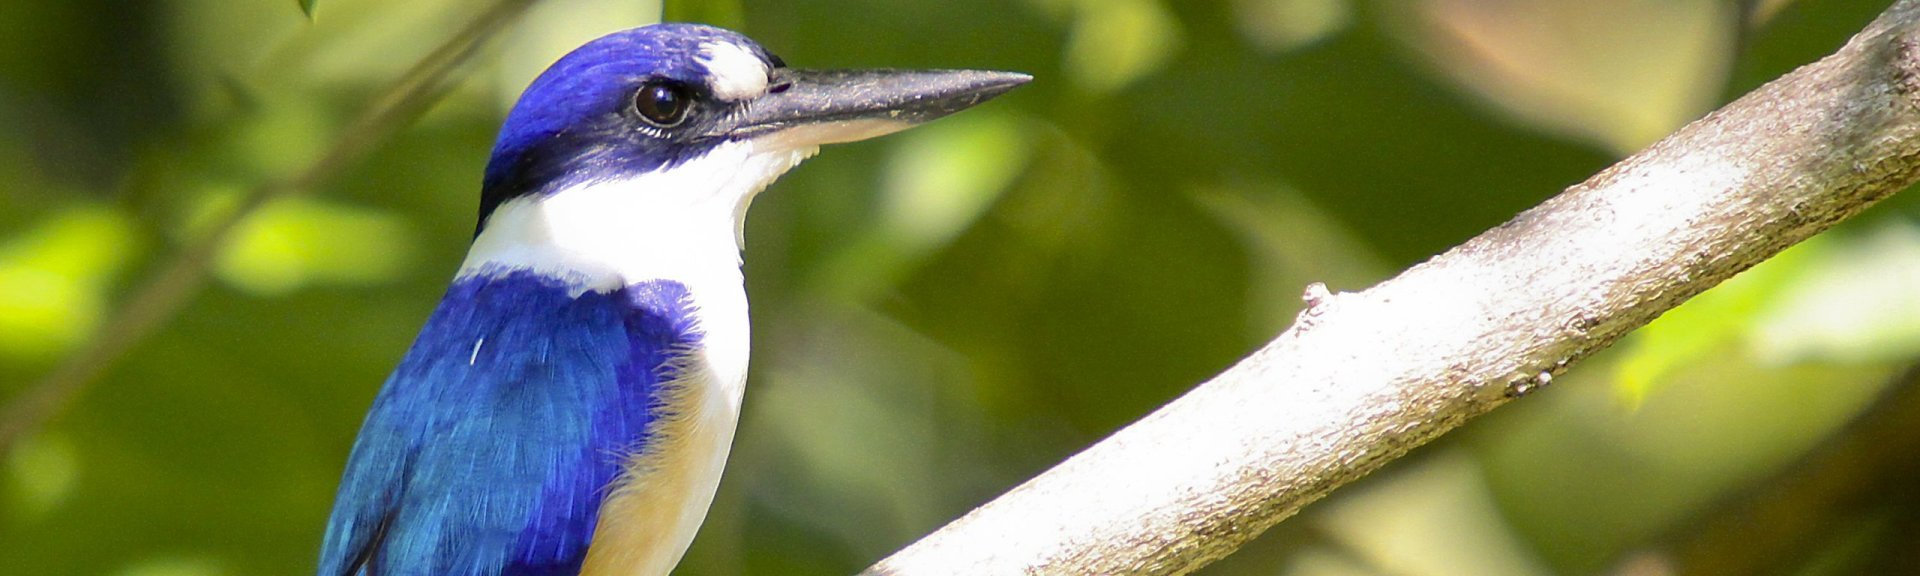 Forest kingfisher. Photo by Marj Kibby.